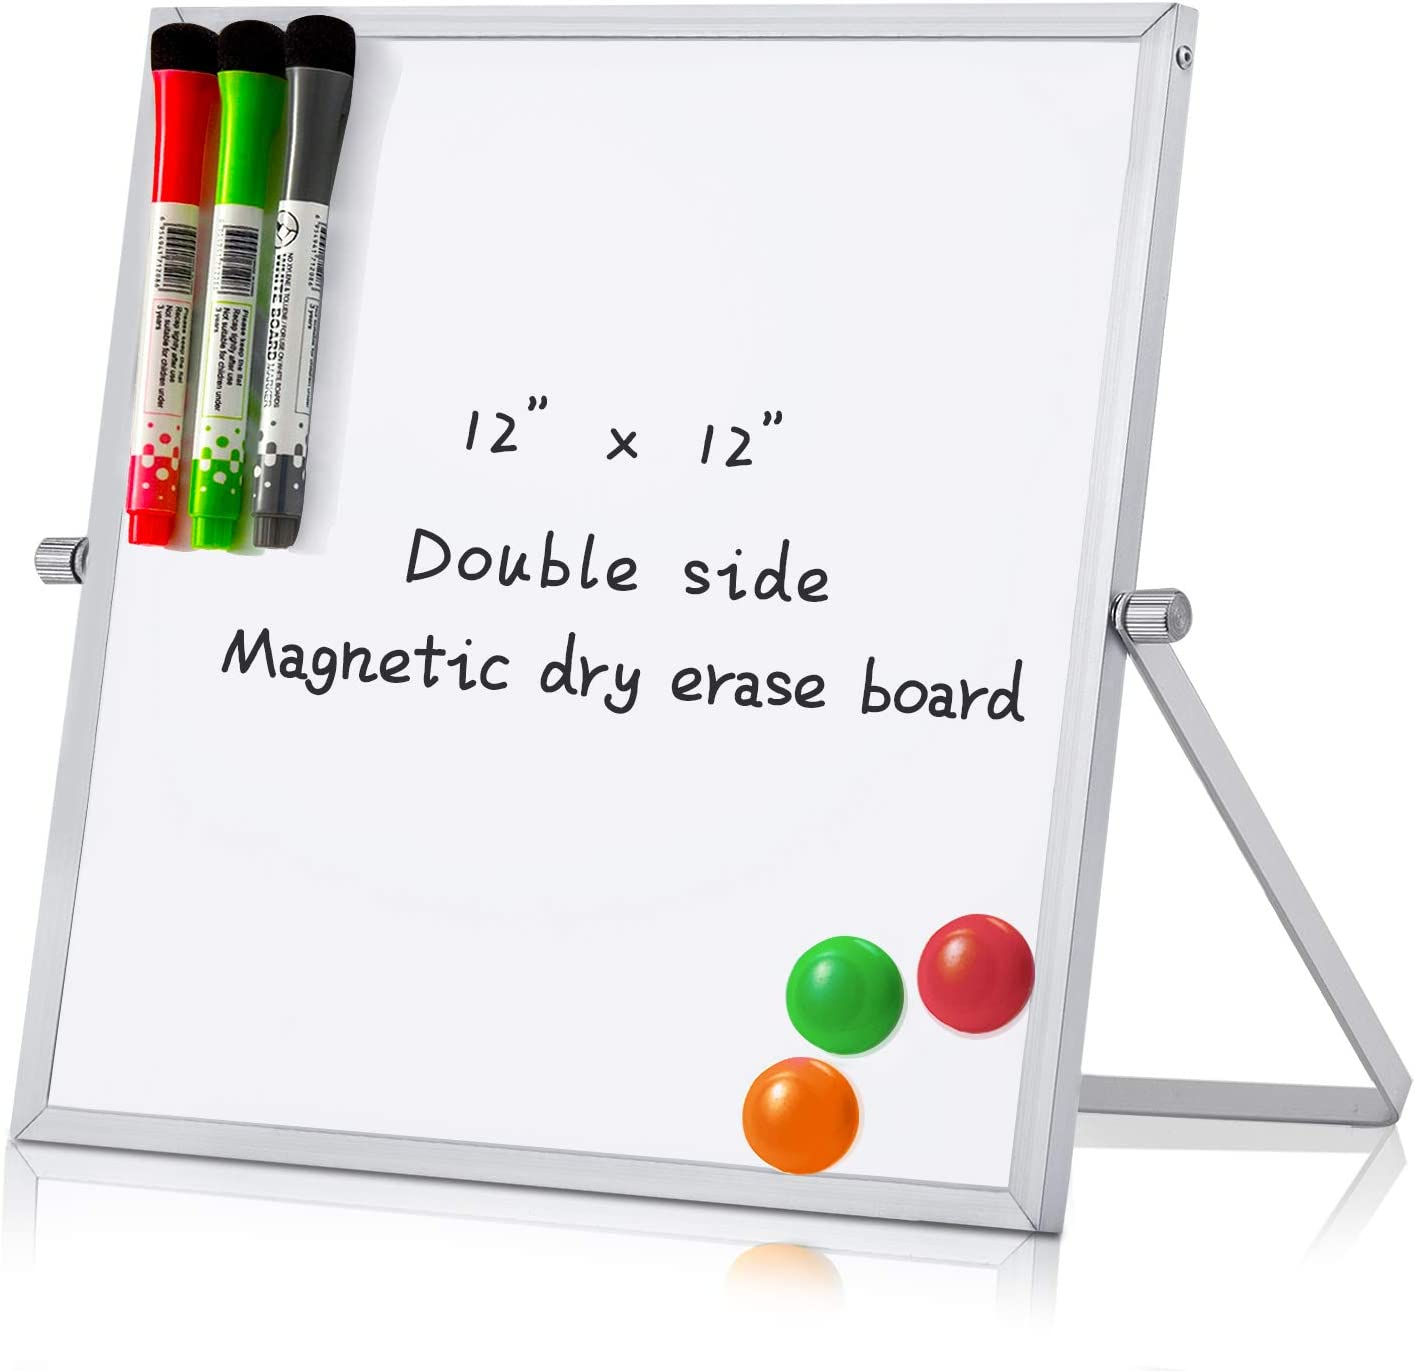 "MerLerner 12"" x 12"" Small Magnetic Dry Erase White Board Mini Portable Dual-Sided Desktop Whiteboard Easel 360°Rotation for Office,Home,School"